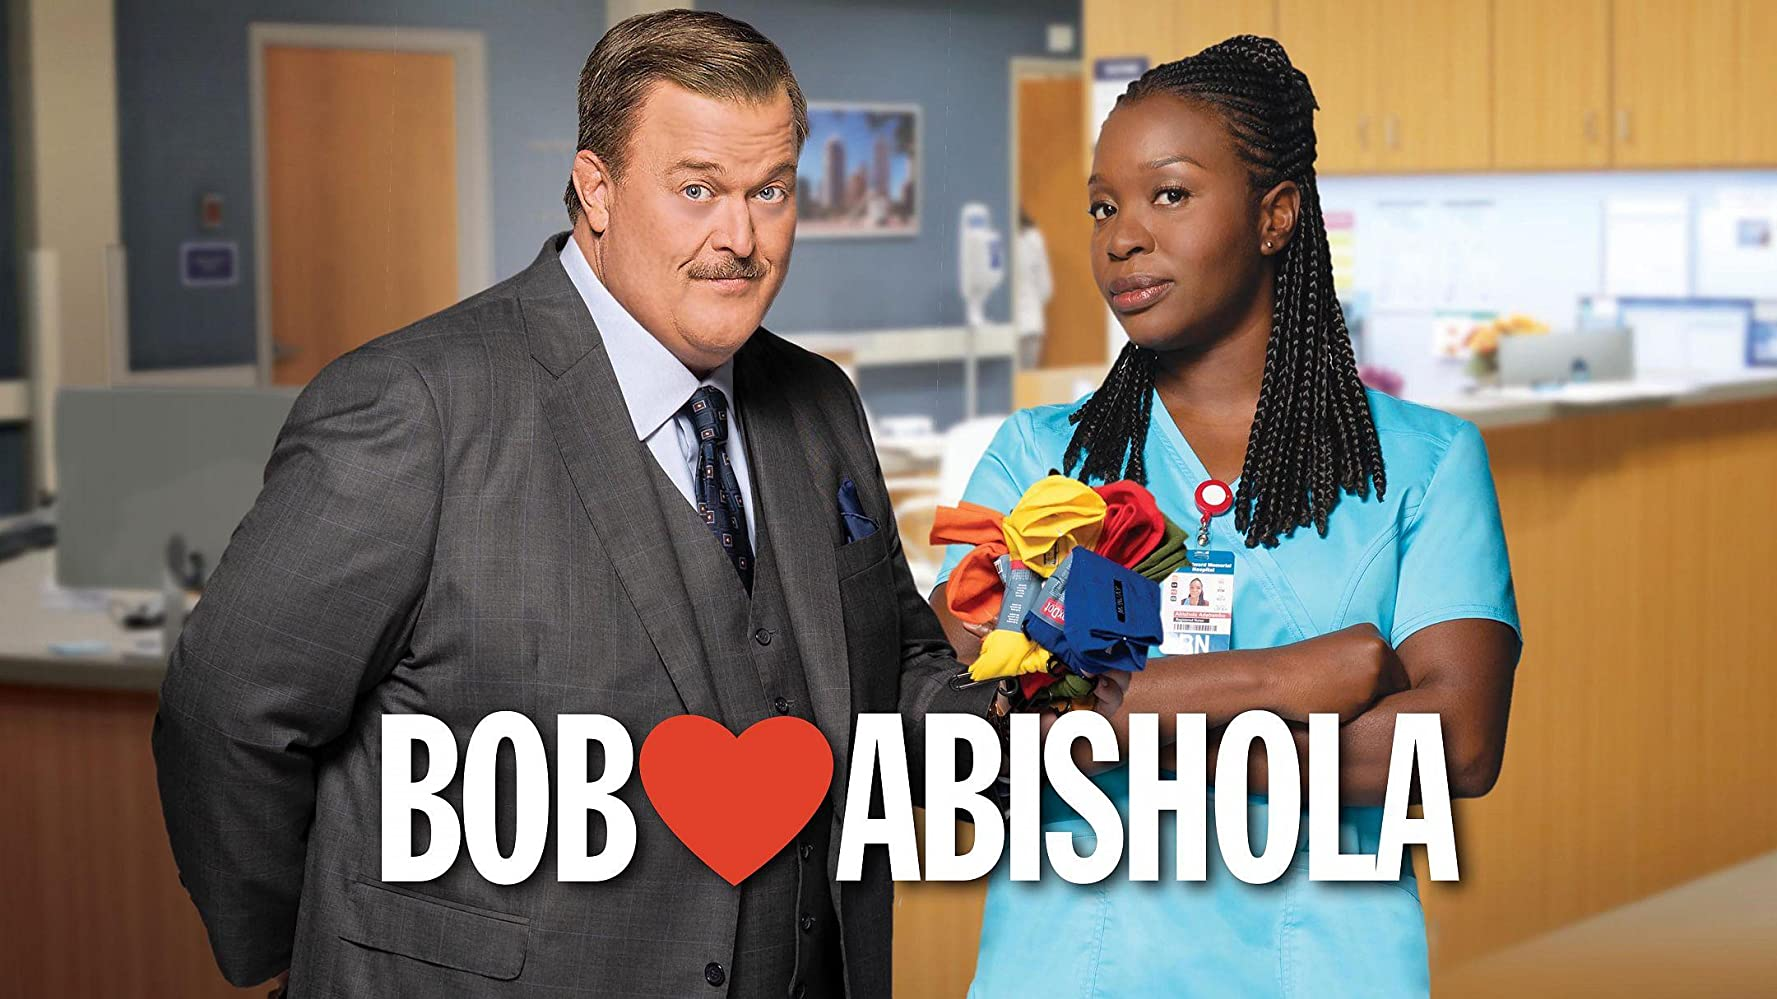 Bob Hearts Abishola (2019) Serial Online Subtitrat in Romana